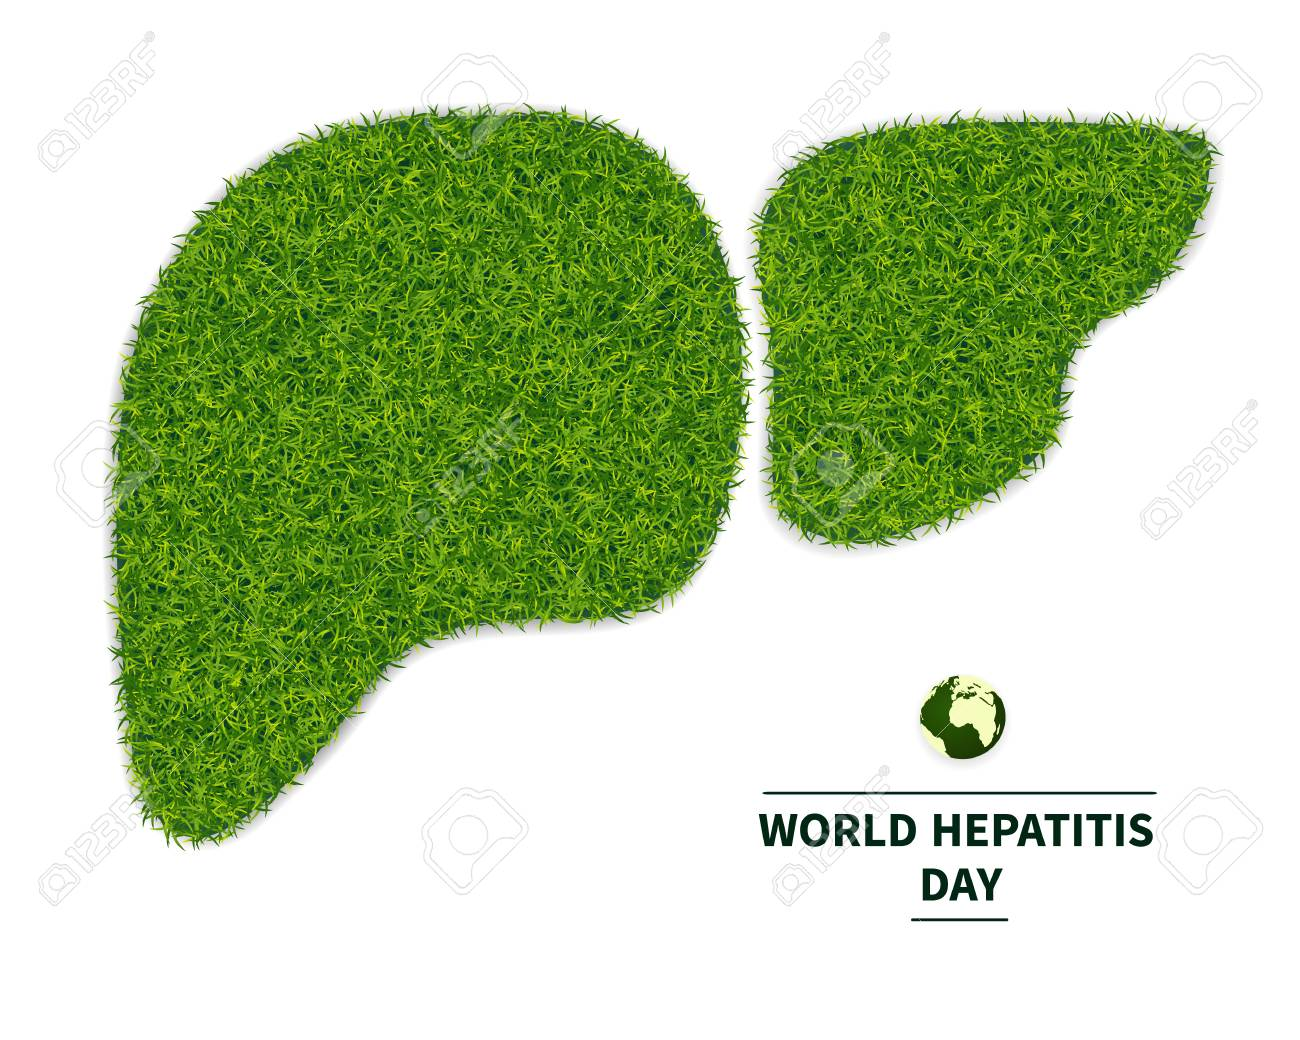 World Hepatitis Day. Symbol of a healthy liver, from a green grass. personifies the health of the body. Ecology in the fight against hepatitis. Isolated on white background, with text, vector illustration. - 101622075